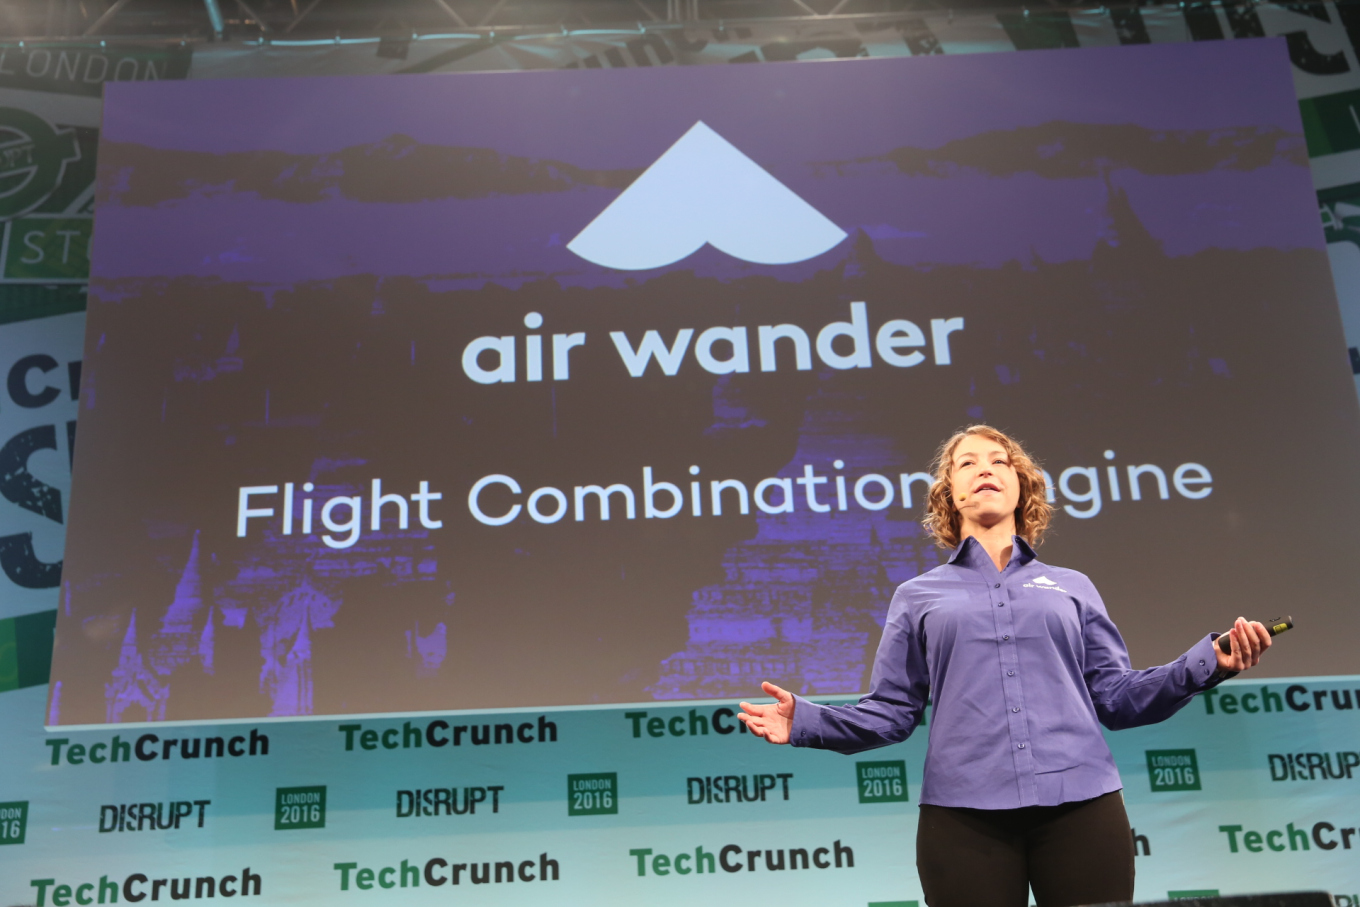 CEO & Founder @ AirWander, Ela Bader